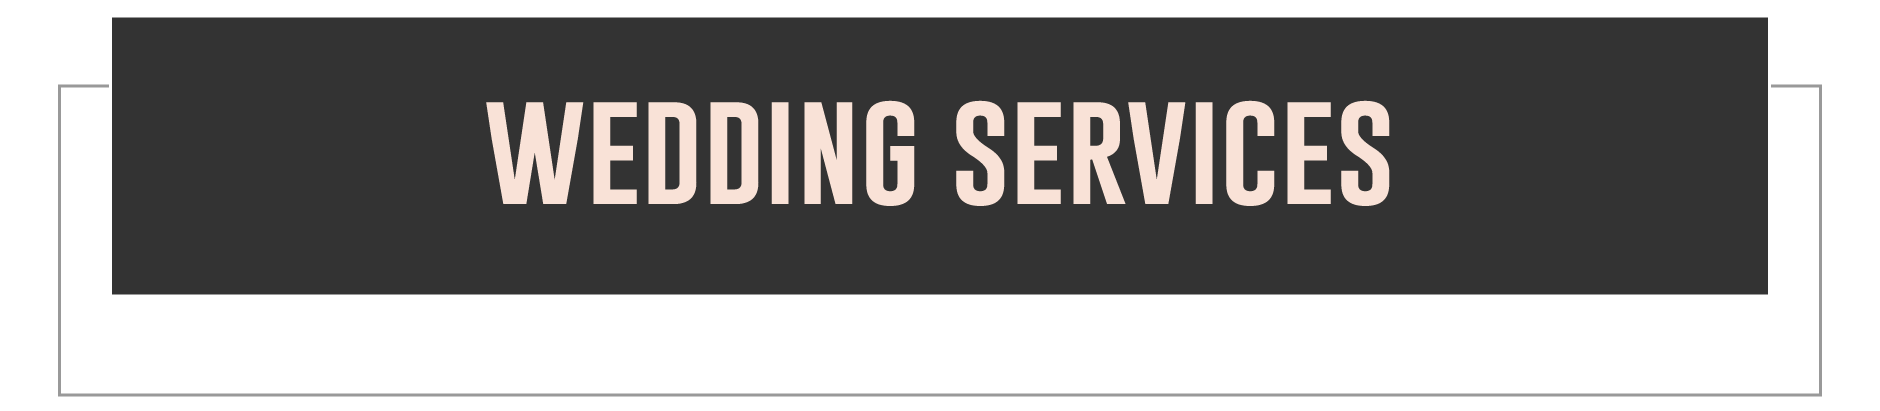 Wedding Services.png